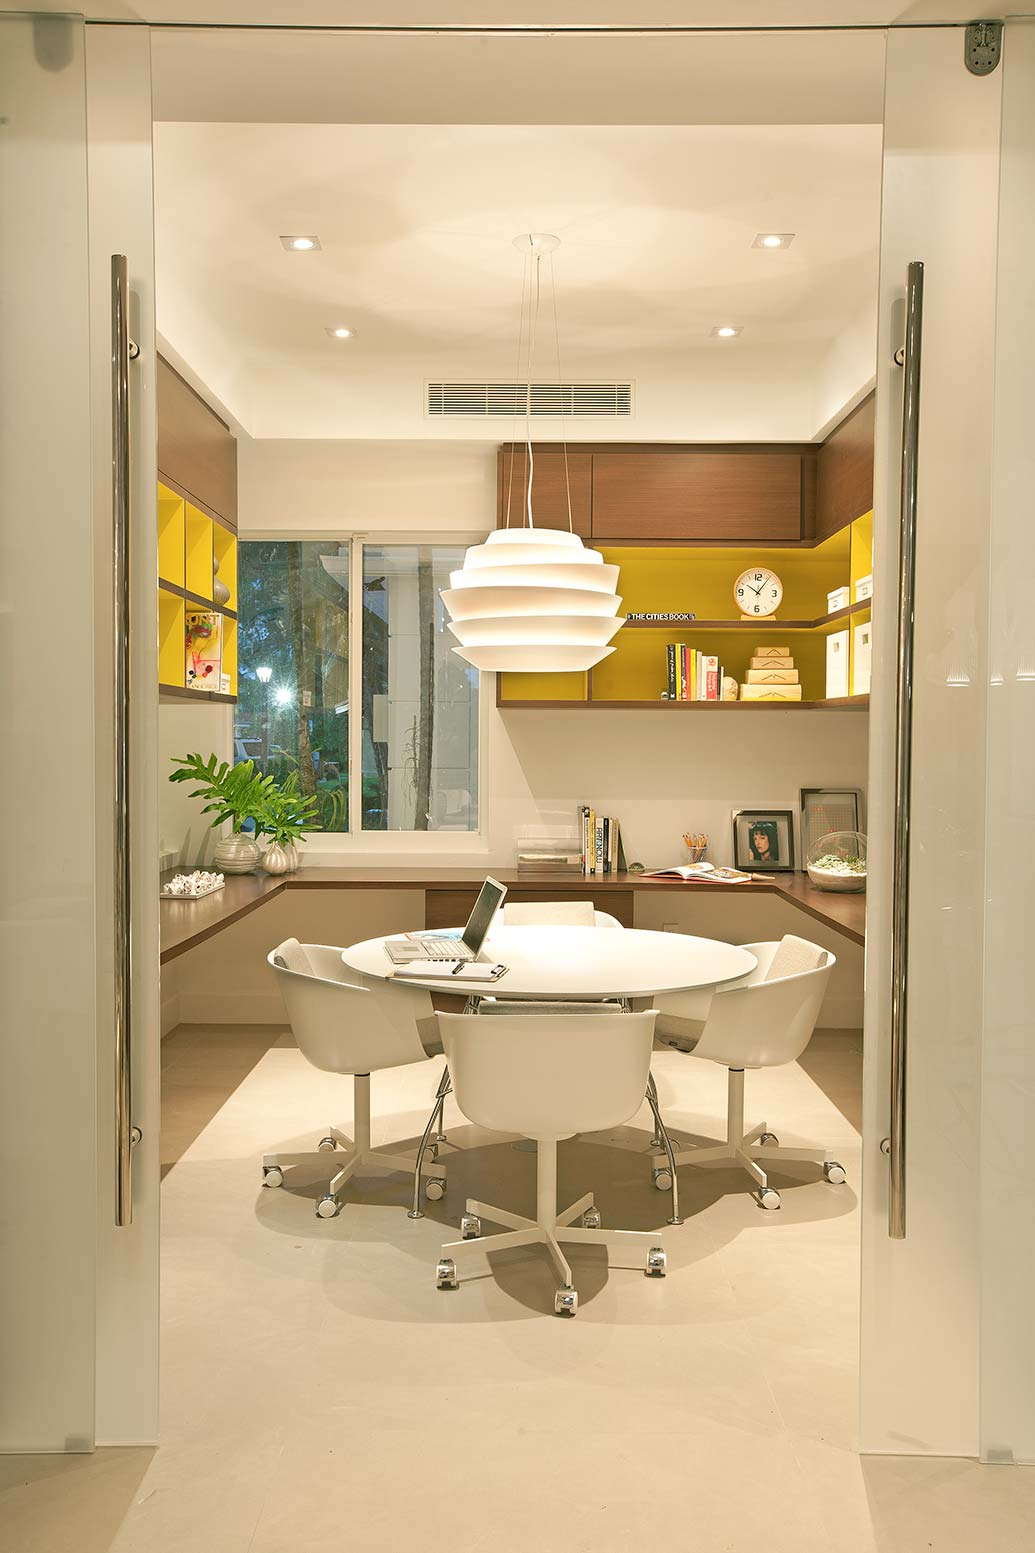 Types of Lighting in Modern Interior Design